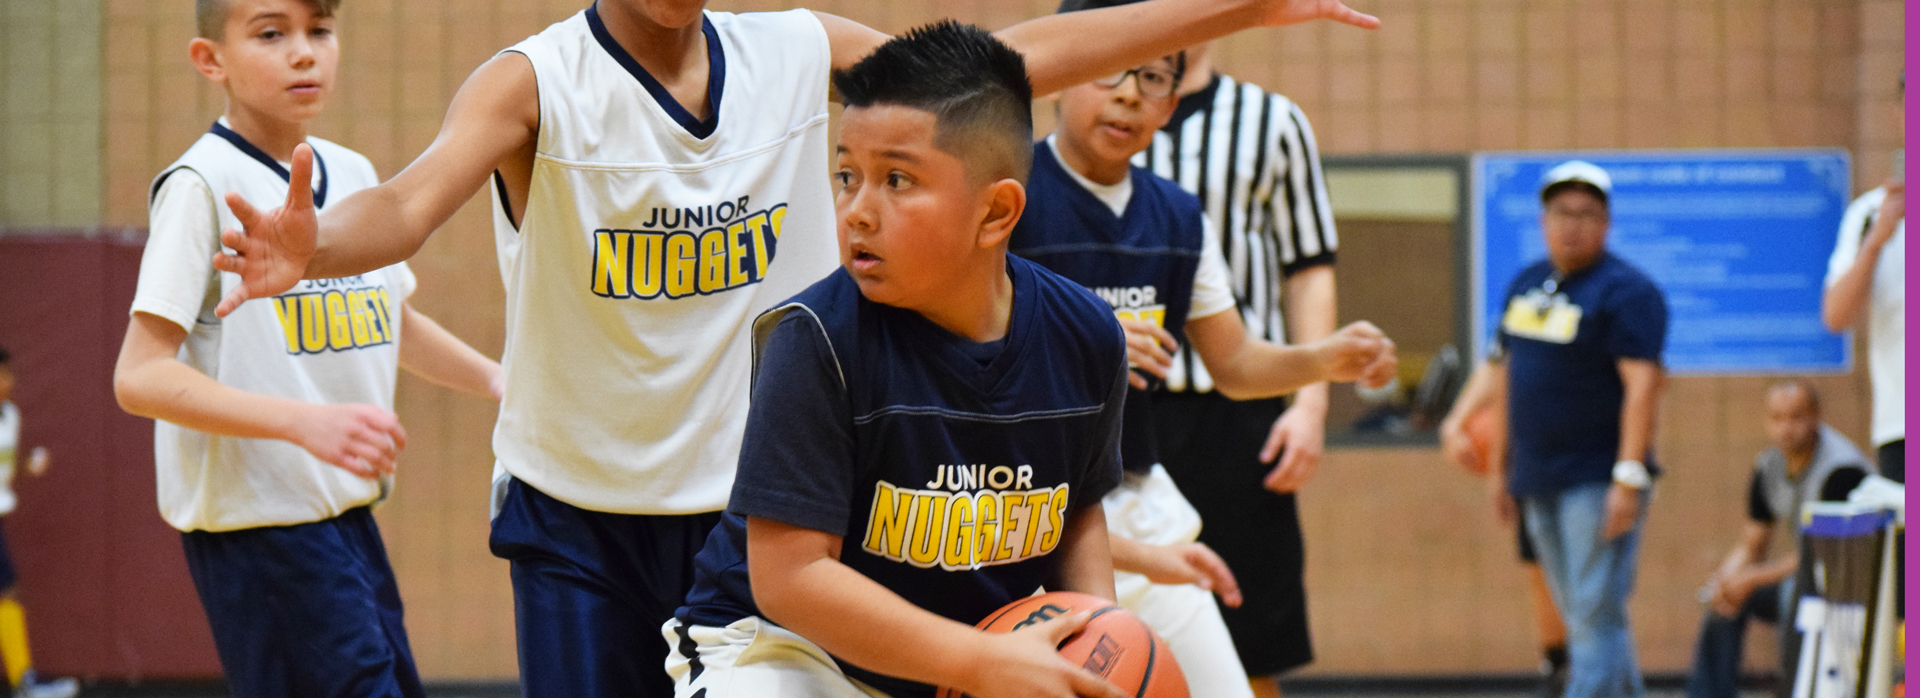 junior nuggets playing basketball